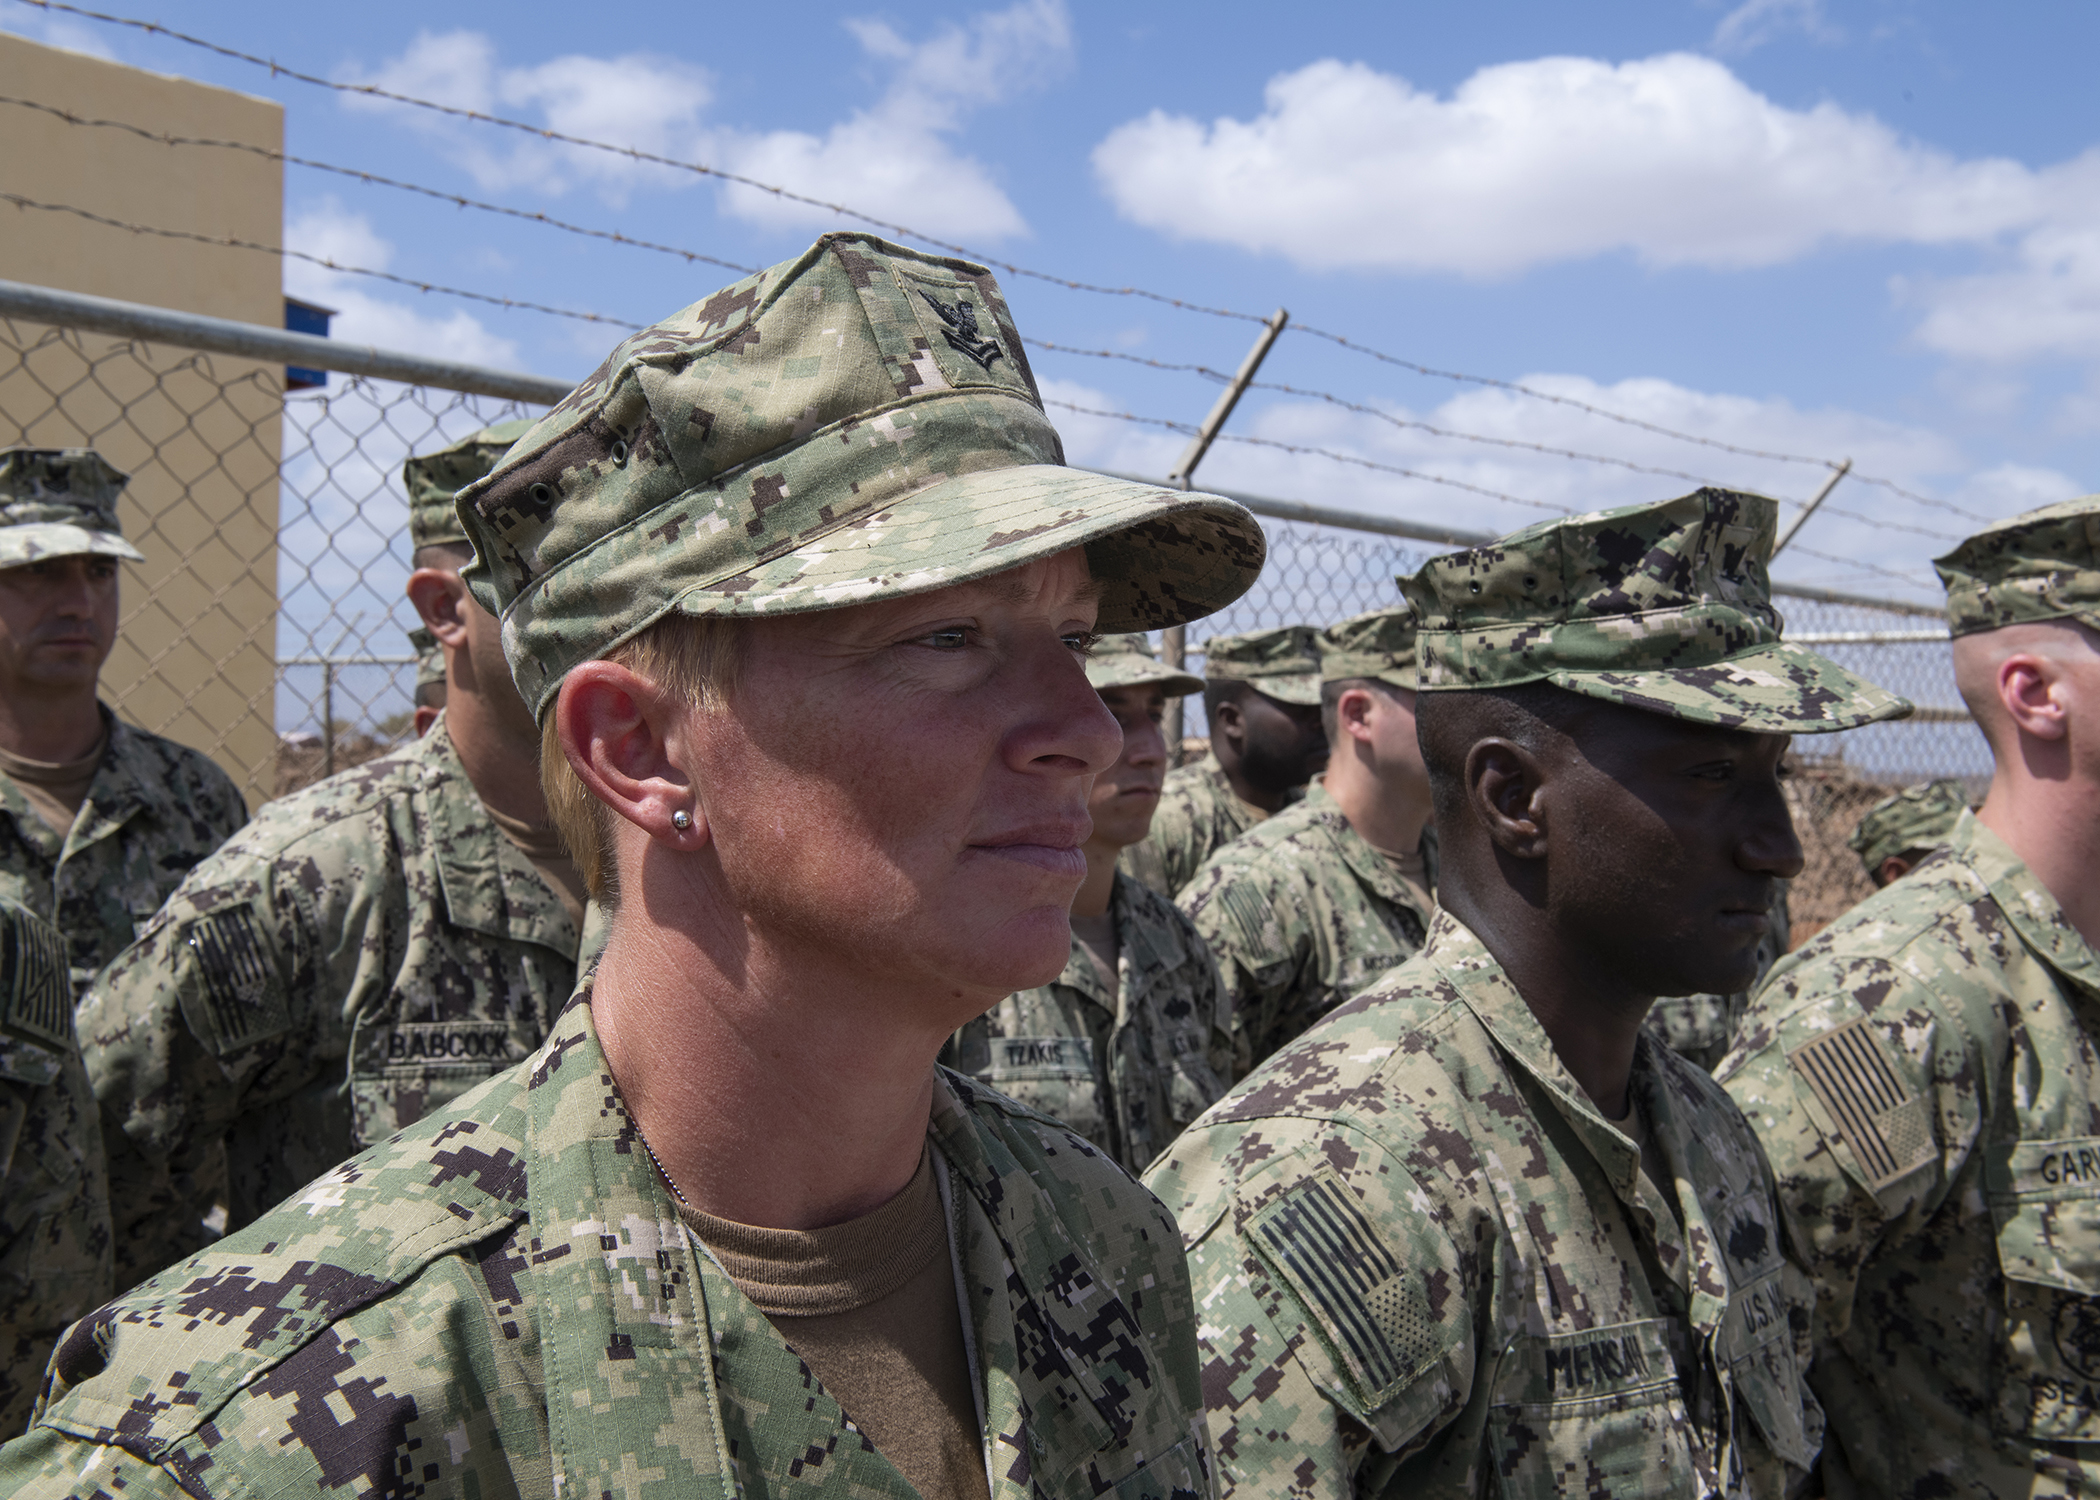 U.S. Navy Petty Officer 1st Class Carroll Bennett, a Seabee from Naval Mobile Construction Battalion 1, assigned to Combined Joint Task Force-Horn of Africa, stands in formation during the Ali Oune Medial Clinic ribbon cutting ceremony in Ali Oune, Djibouti, Jan. 31, 2019. The clinic, which the Seabees have worked on for five months, is intended to enhance the Ministry of Health for Djibouti's ability to provide basic medical, birth and after care to the Ali Oune village and its more than 1,000 residents and rural neighbors. (U.S. Air Force photo by Tech. Sgt. Shawn Nickel)